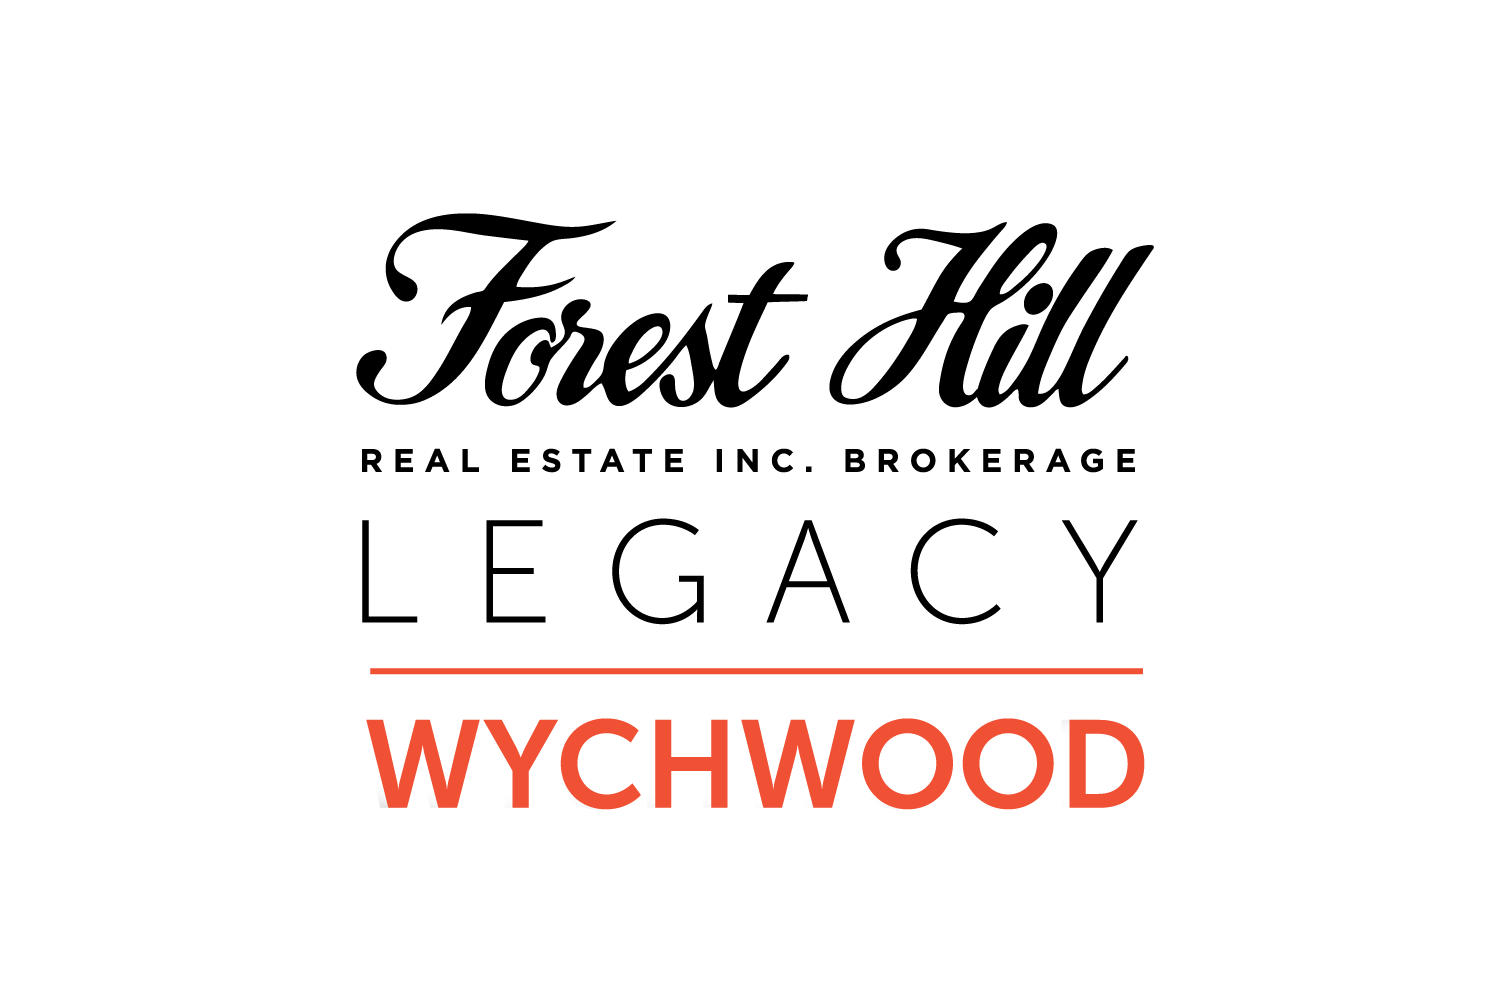 forest_hill_Legacy-Wychwood-blackred.png